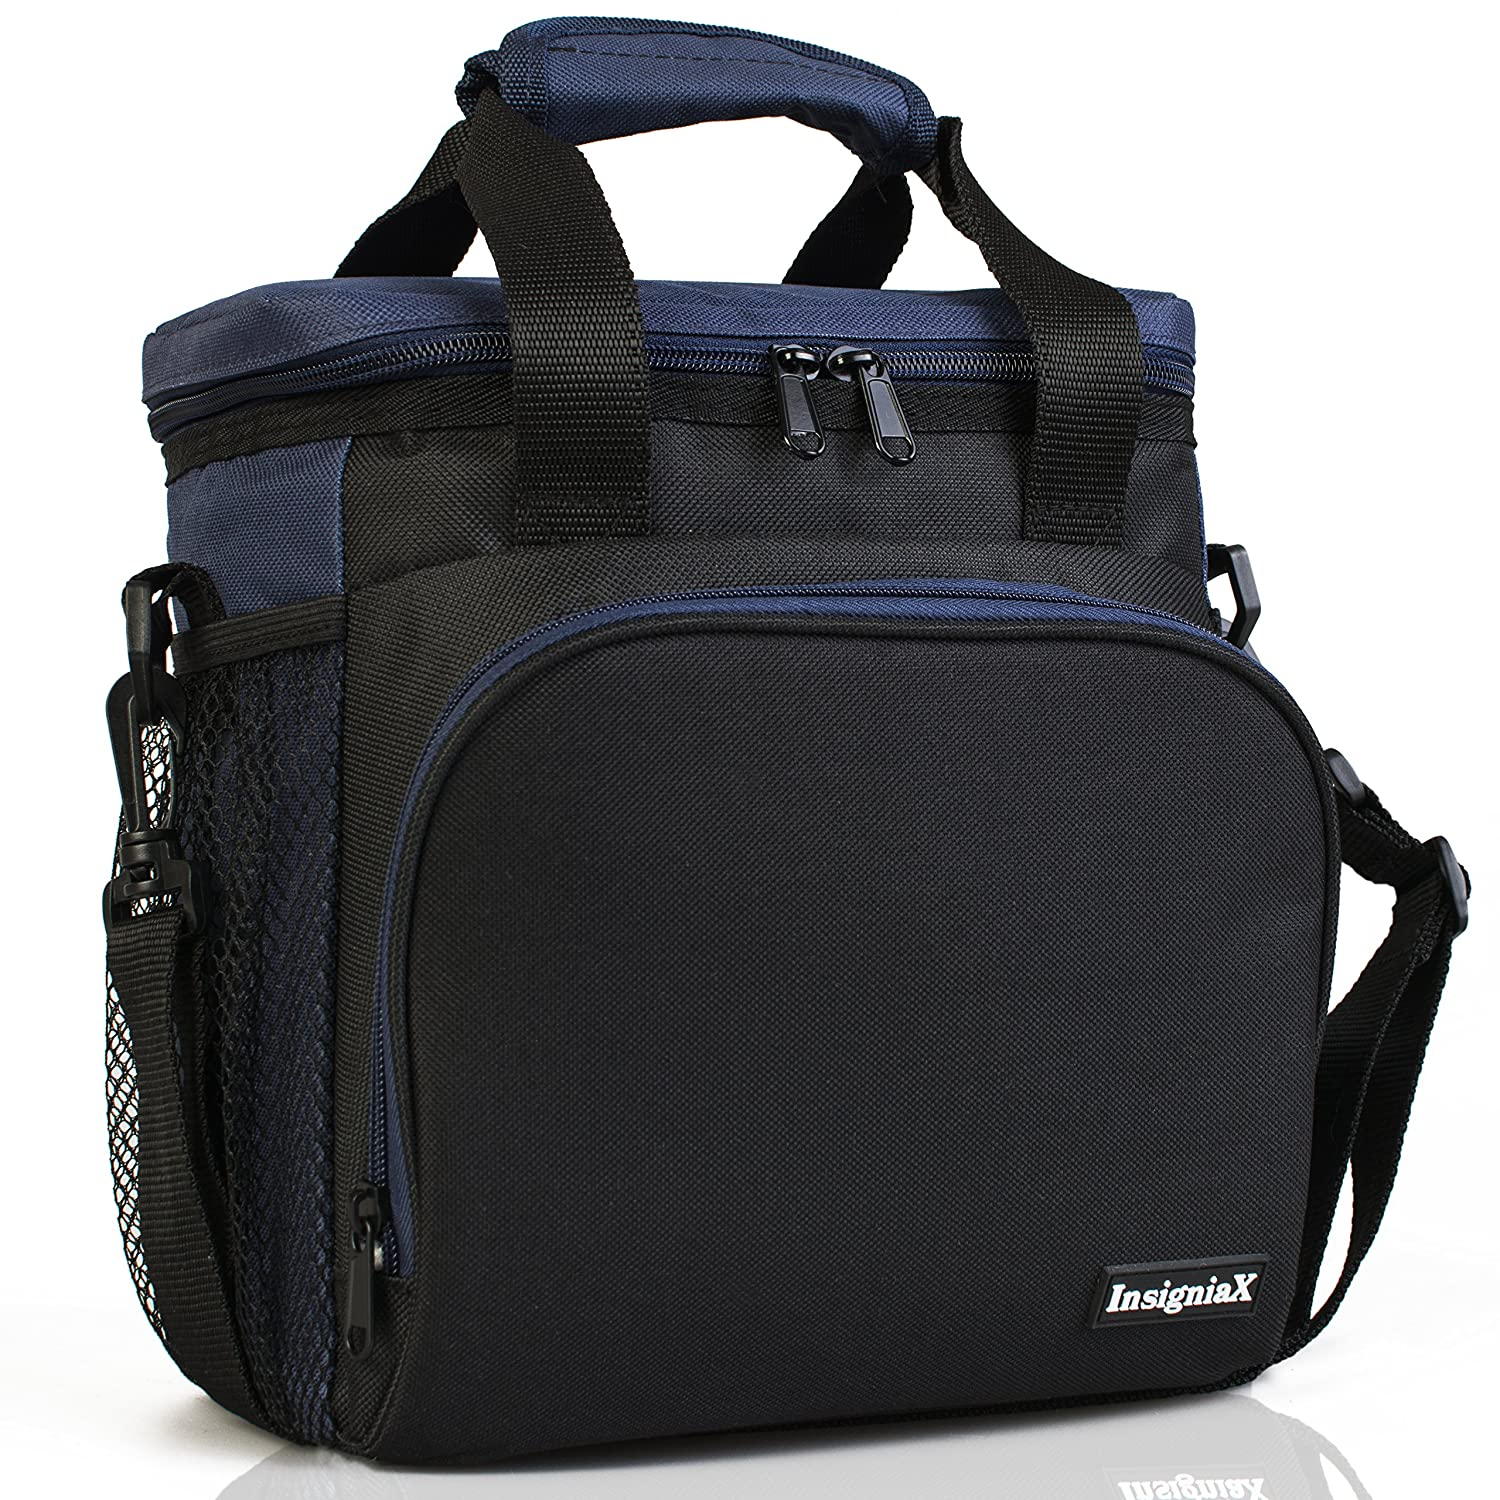 Insulated Lunch Bag S1/S2: InsigniaX Lunch Box/Cooler/Lunchbag for Adult Women Men Work School Picnic Kids Girls Boys With Strap Bottle Holder H: 10 x W: 5.1 x L: 9.2 (Standard, Black) Shopflex Limited